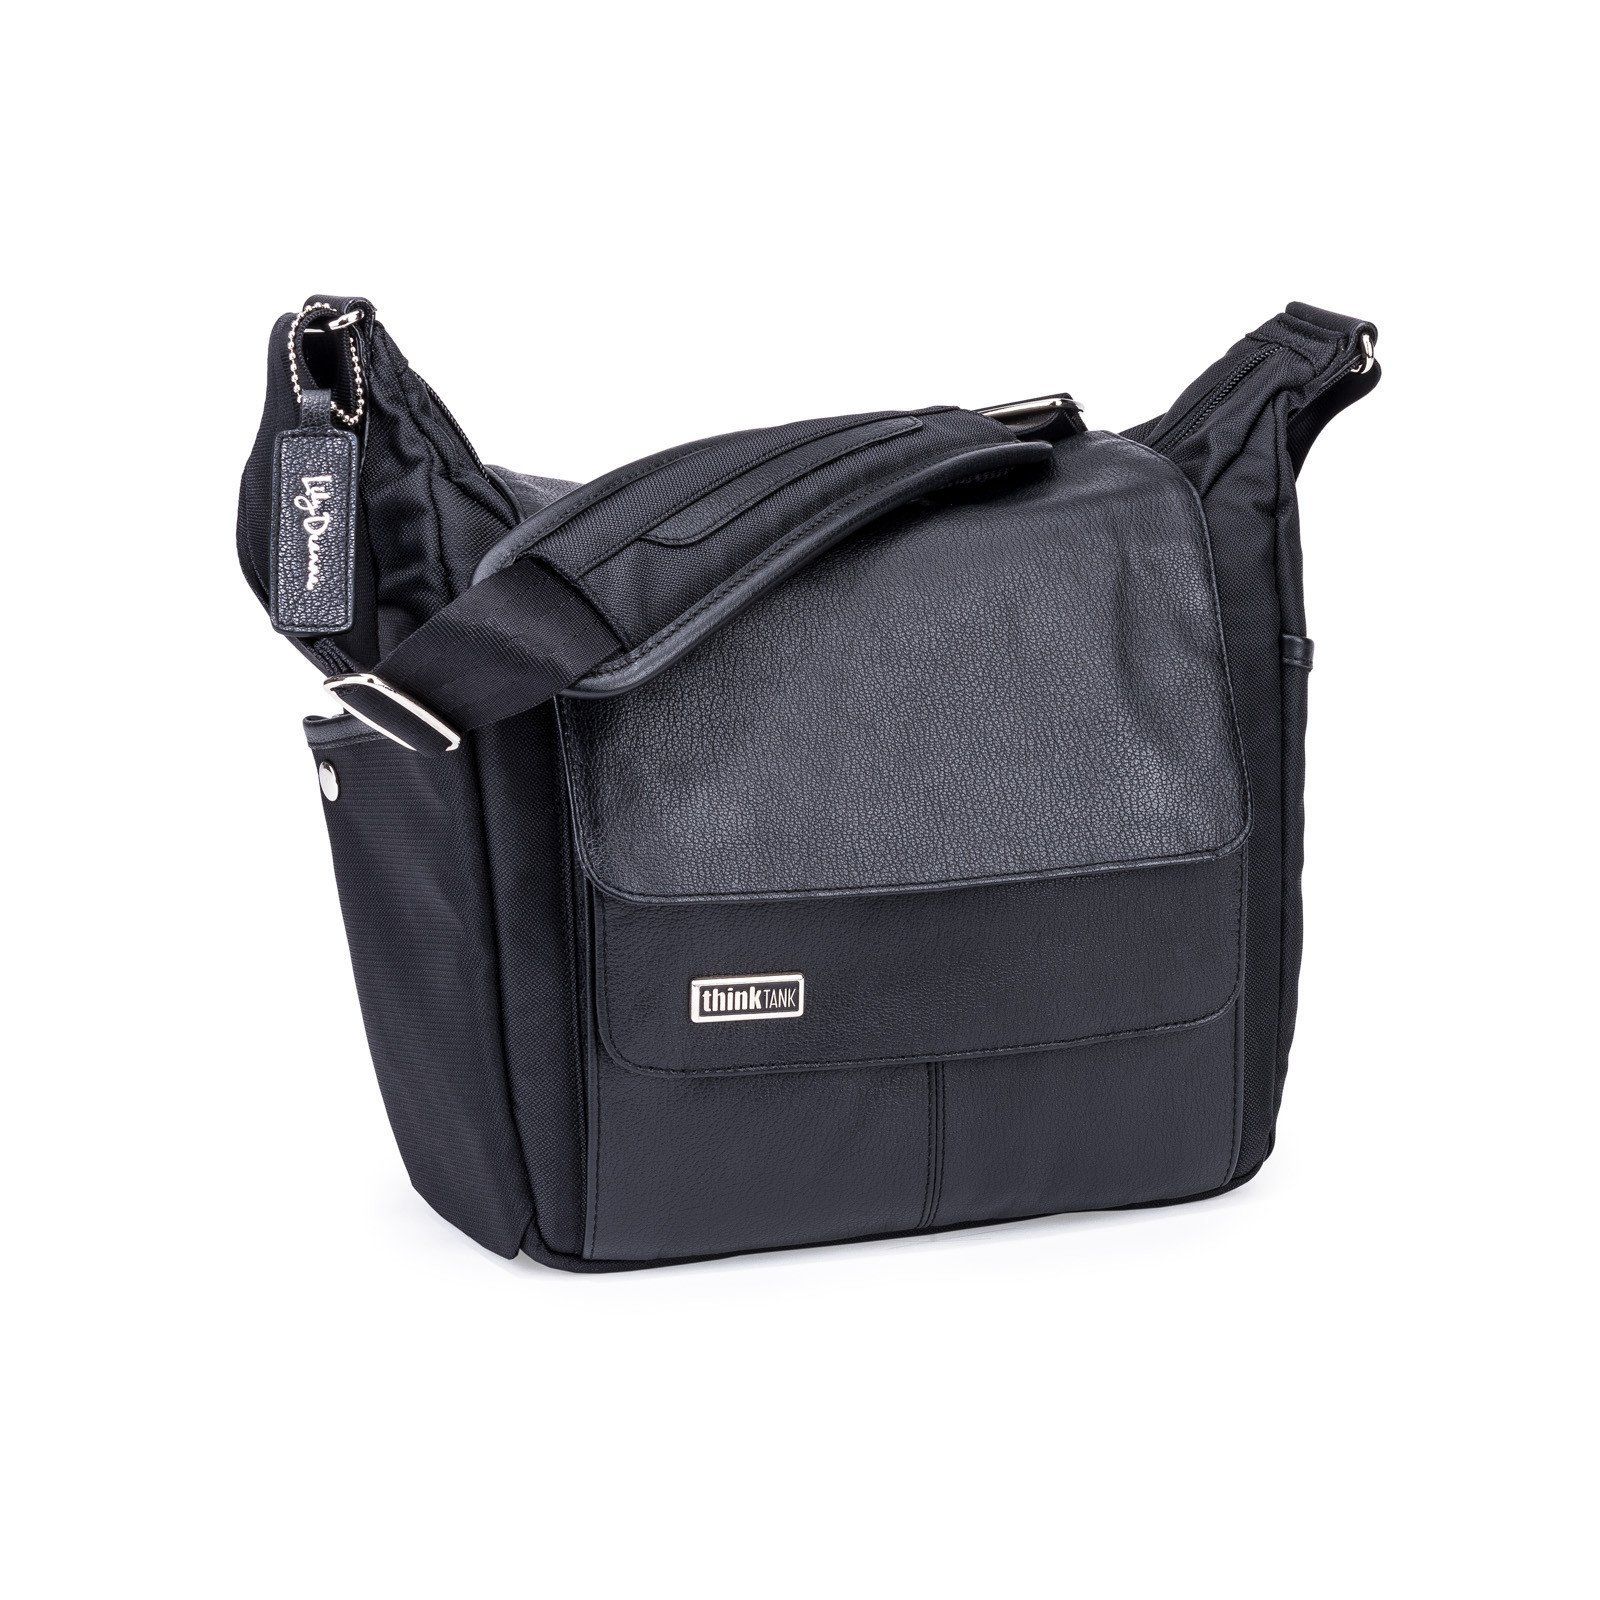 Think Tank Photo Lily Deanne Lucido Premium-Quality Camera Bag (Licorice) by Think Tank